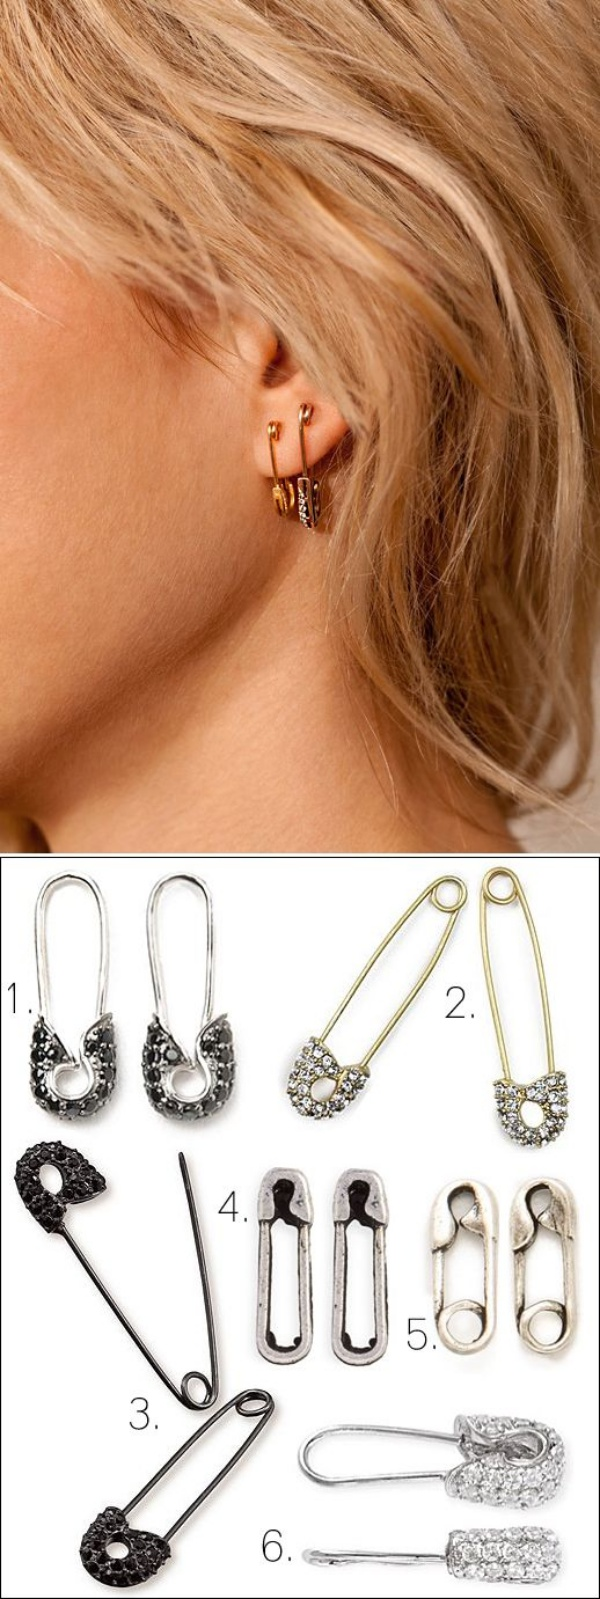 Make Your Own DIY Safety Pin Jewelry Ideas